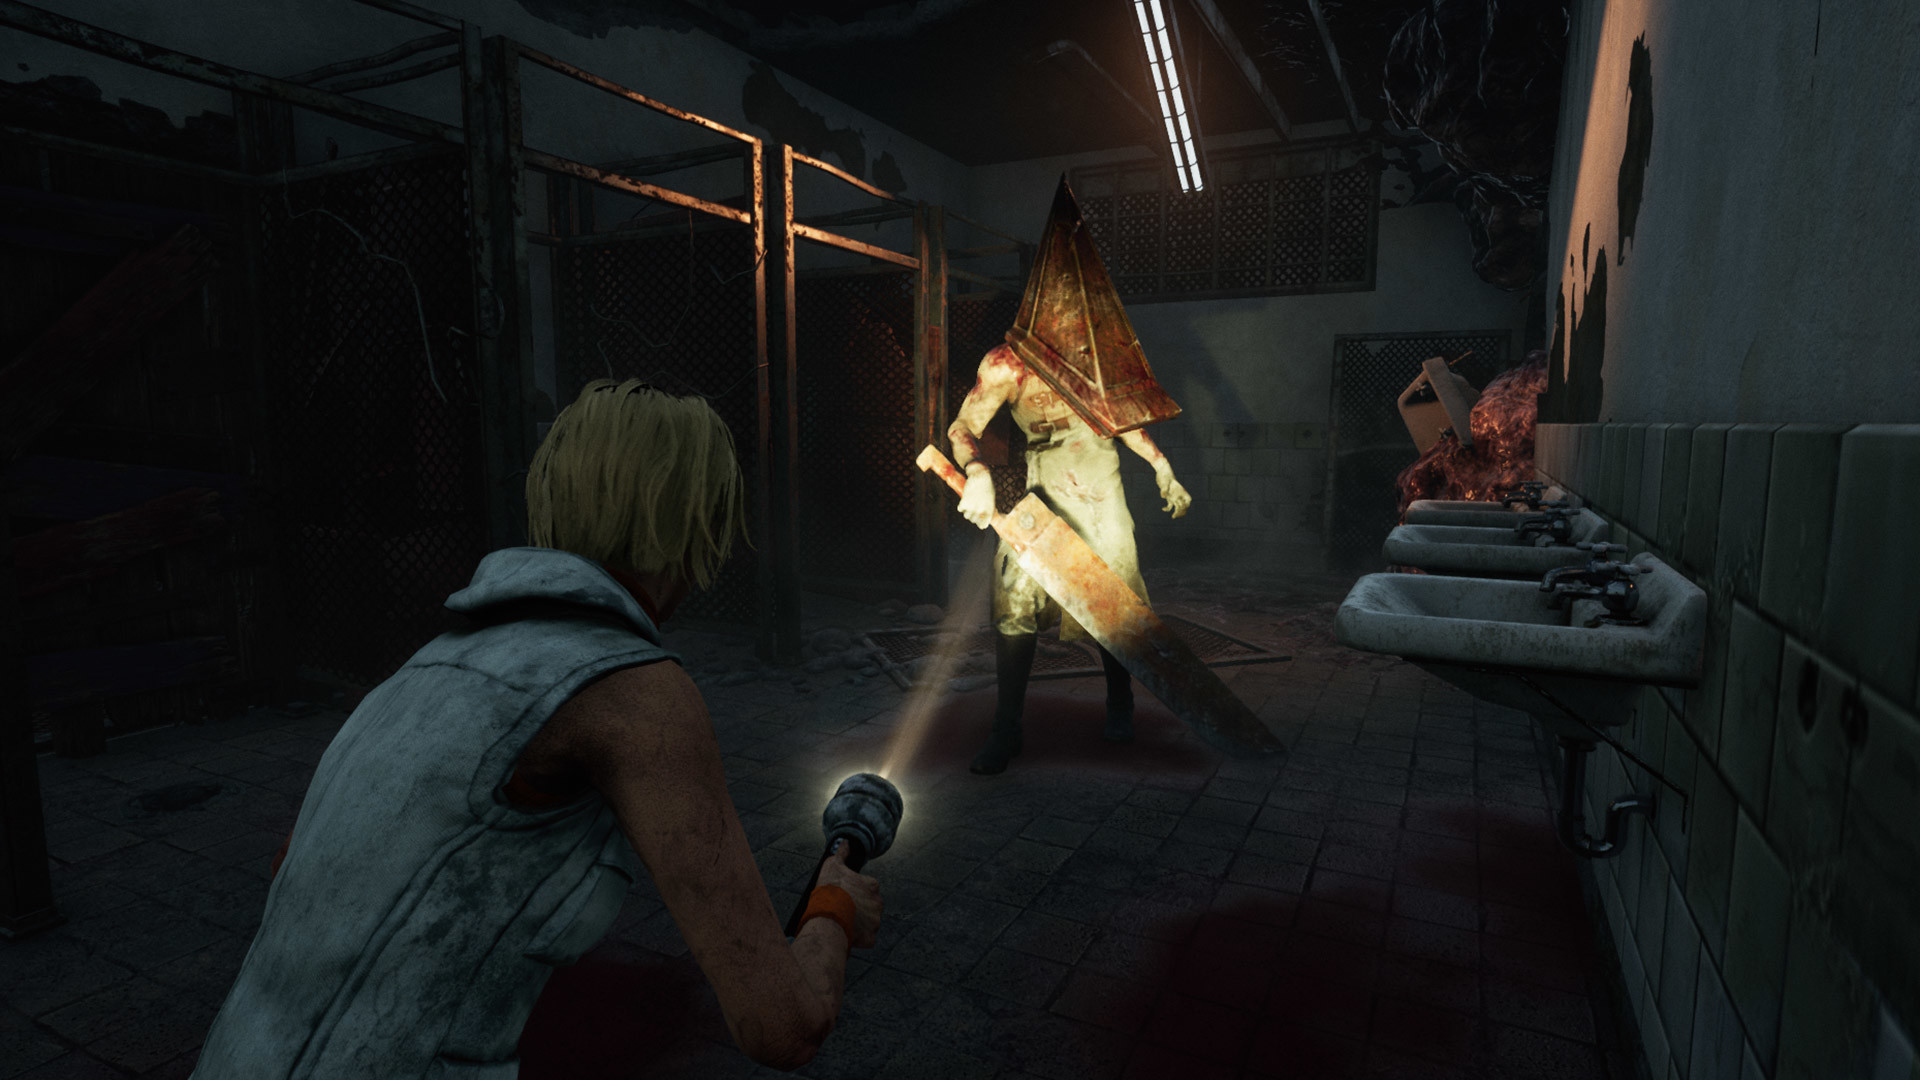 Dead by Daylight adds cross-play and unified friends list between PC and consoles